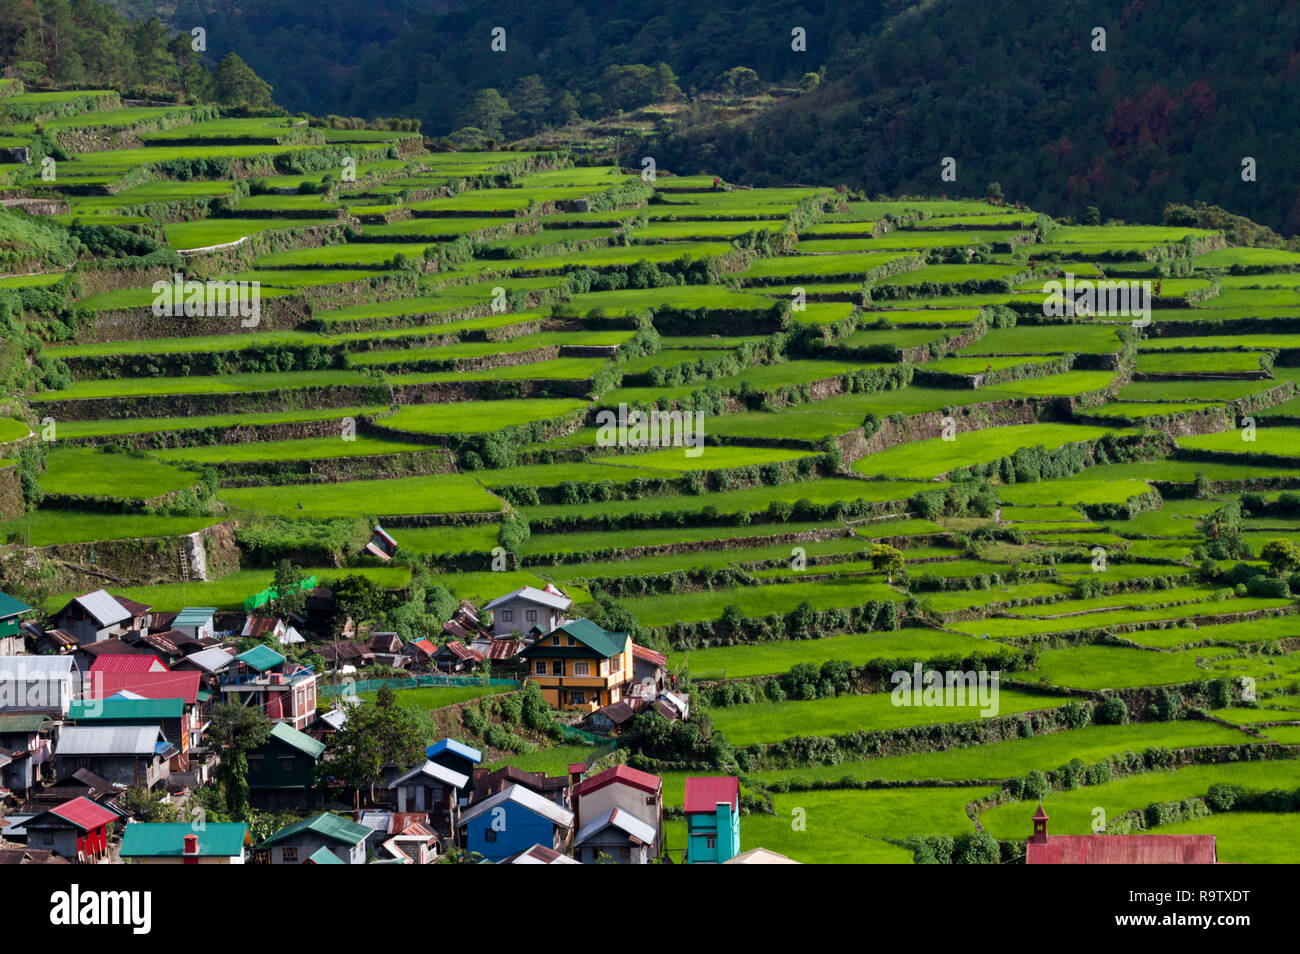 Banaue Rice Terraces in the Philippines, where farmers use terraces to produce crops. Rice terraces sometimes called Eighth Wonder of the World. - Stock Image